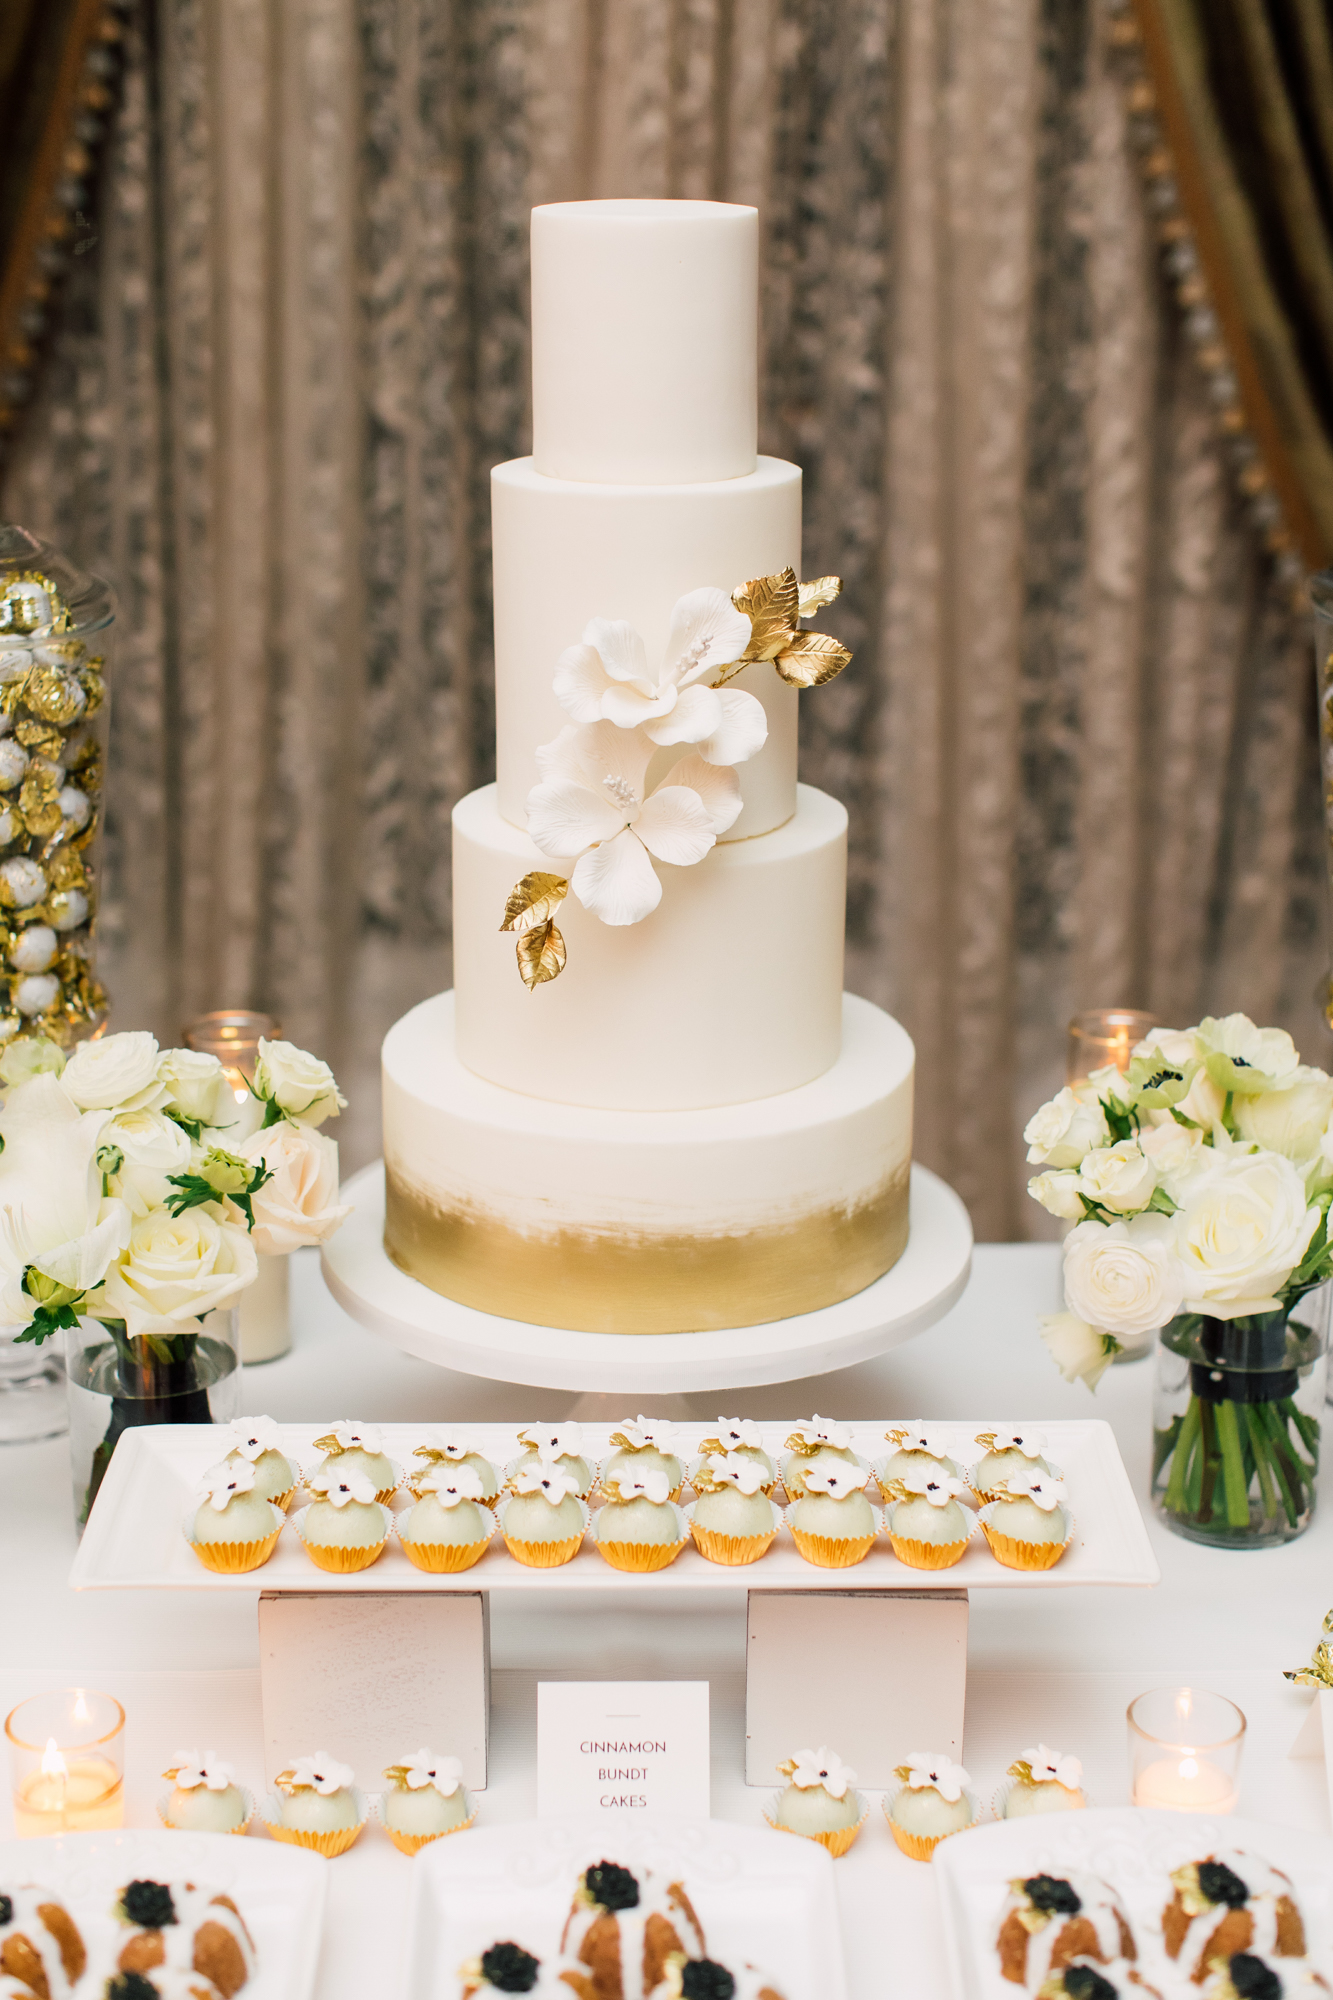 truffle cake and pastry wedding cake